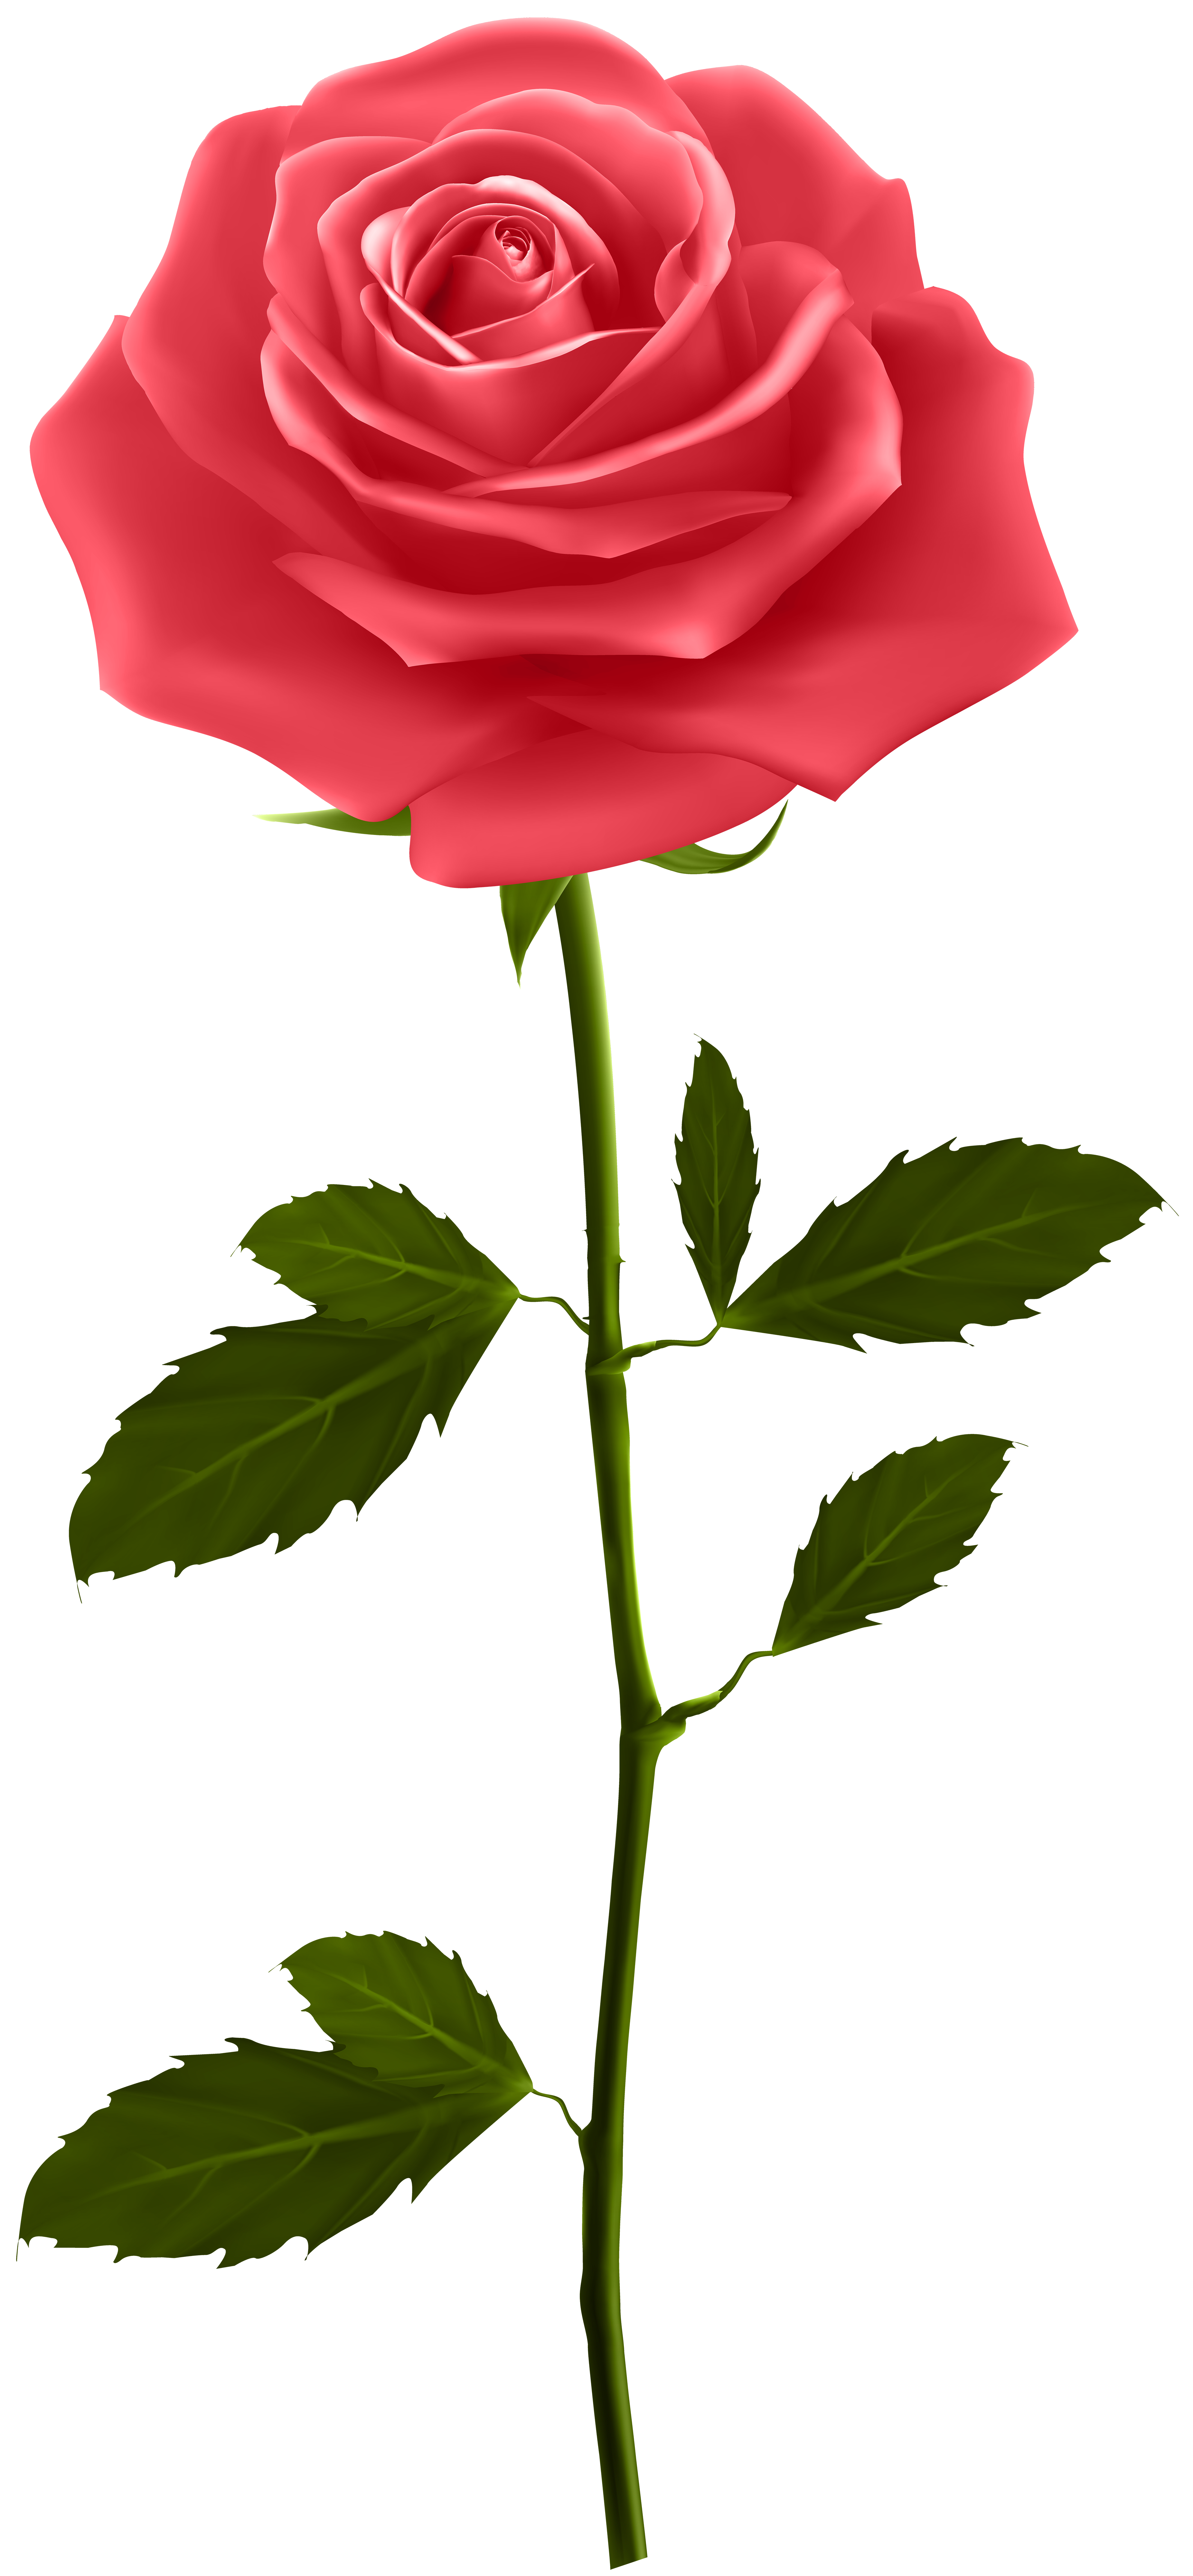 Flower stem png. Red rose with clip